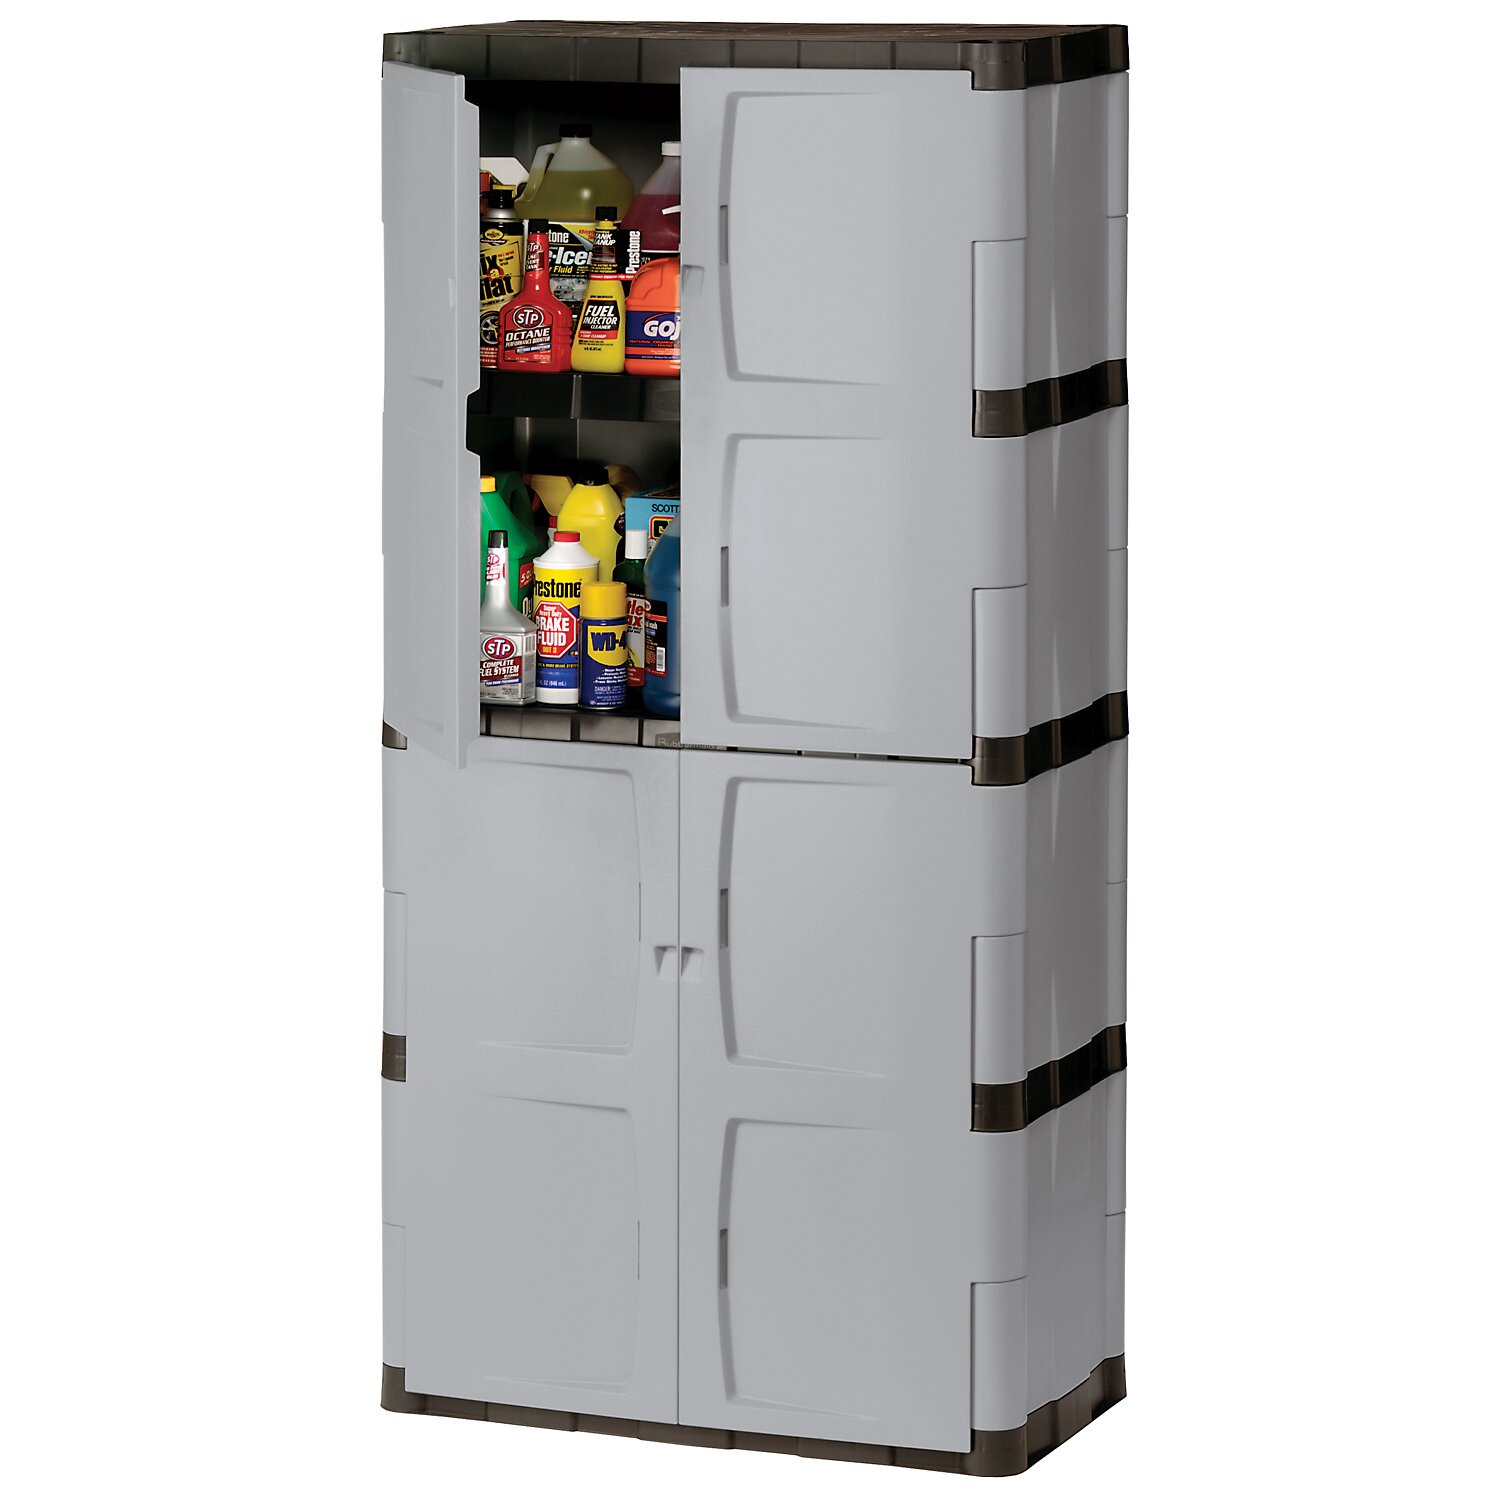 Rubbermaid 72 h x 36 w x 18 d full double door cabinet for Kitchen cabinets 36 x 18